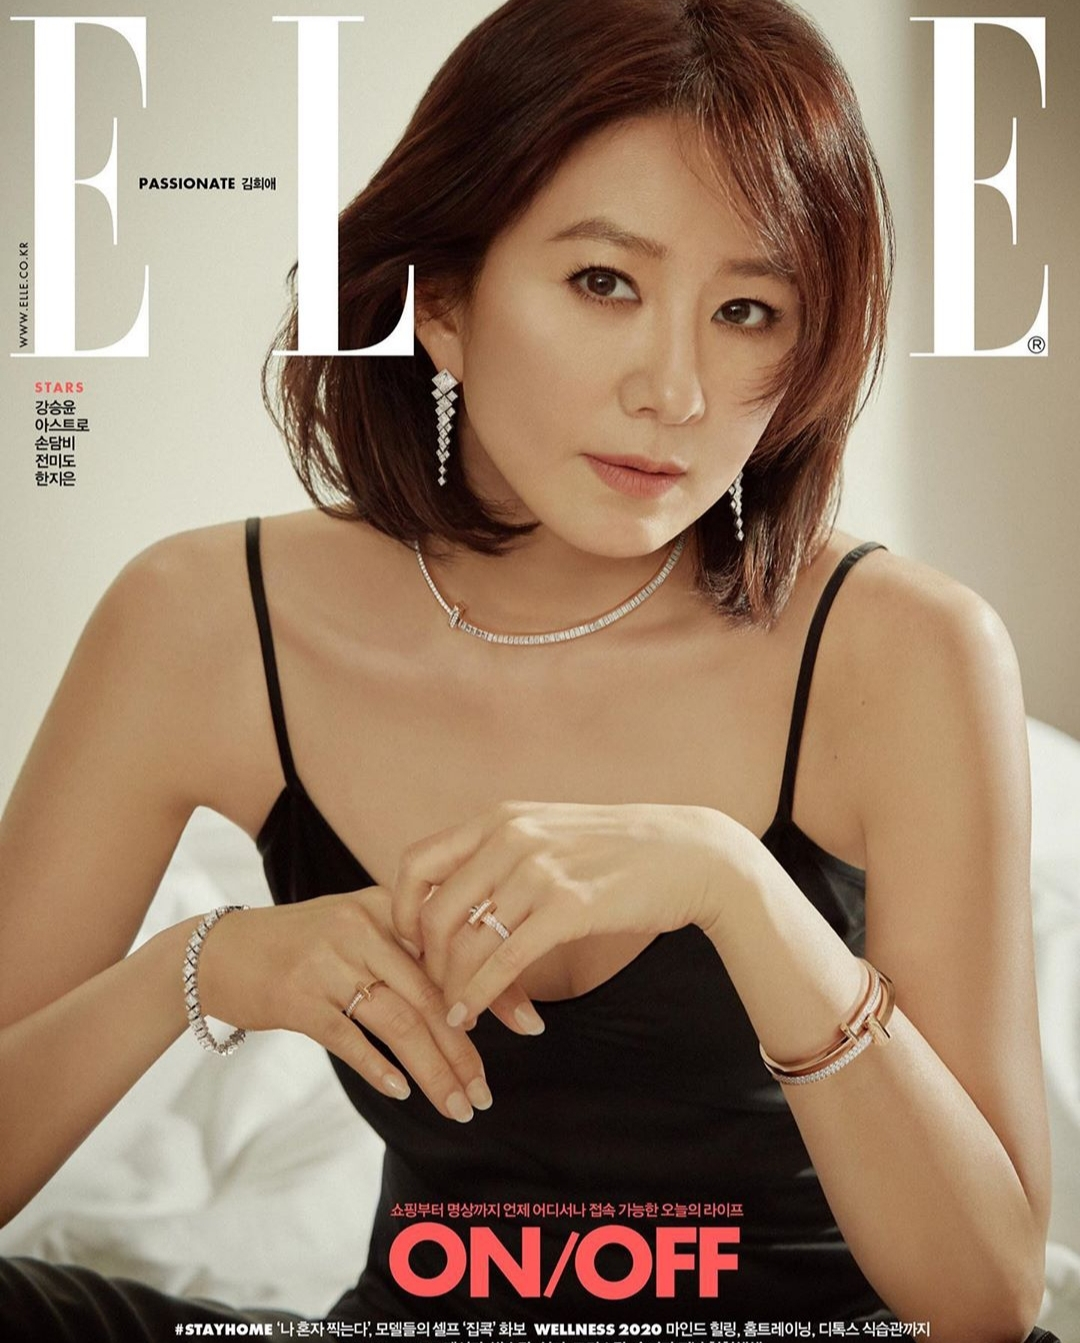 Fashion PULIS: Like Or Dislike: Kim Hee Ae Of 'The World